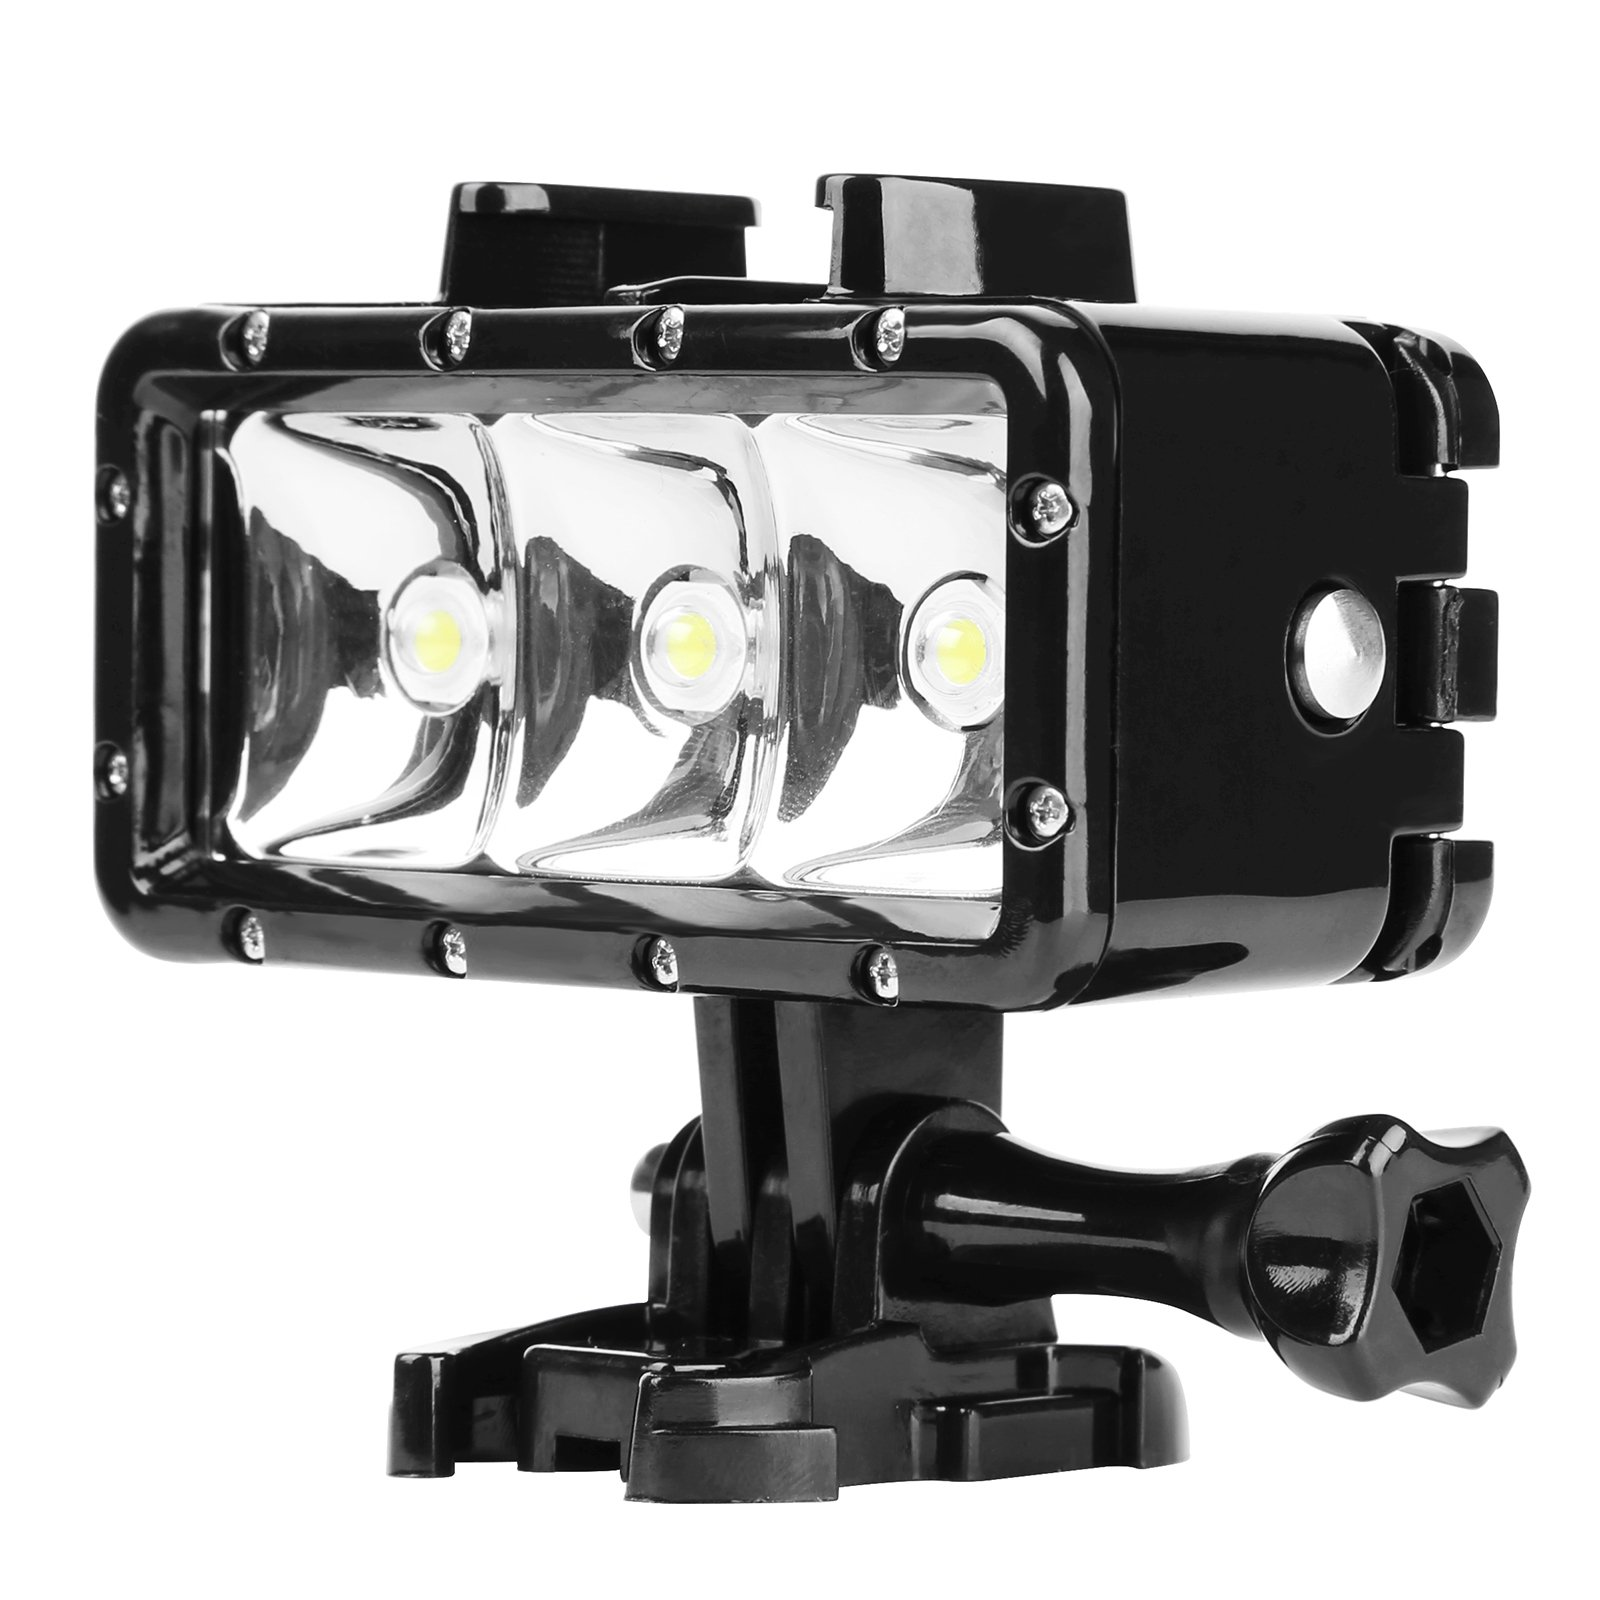 Mojosketch Waterproof led Light 45m Diving Lights Fill-in Light for GoPro Hero 7 6 5 4 3+ Action Camera, Campark, and All DSLR Cameras, Waterproof housing Underwater Photographic Lighting System by mojosketch